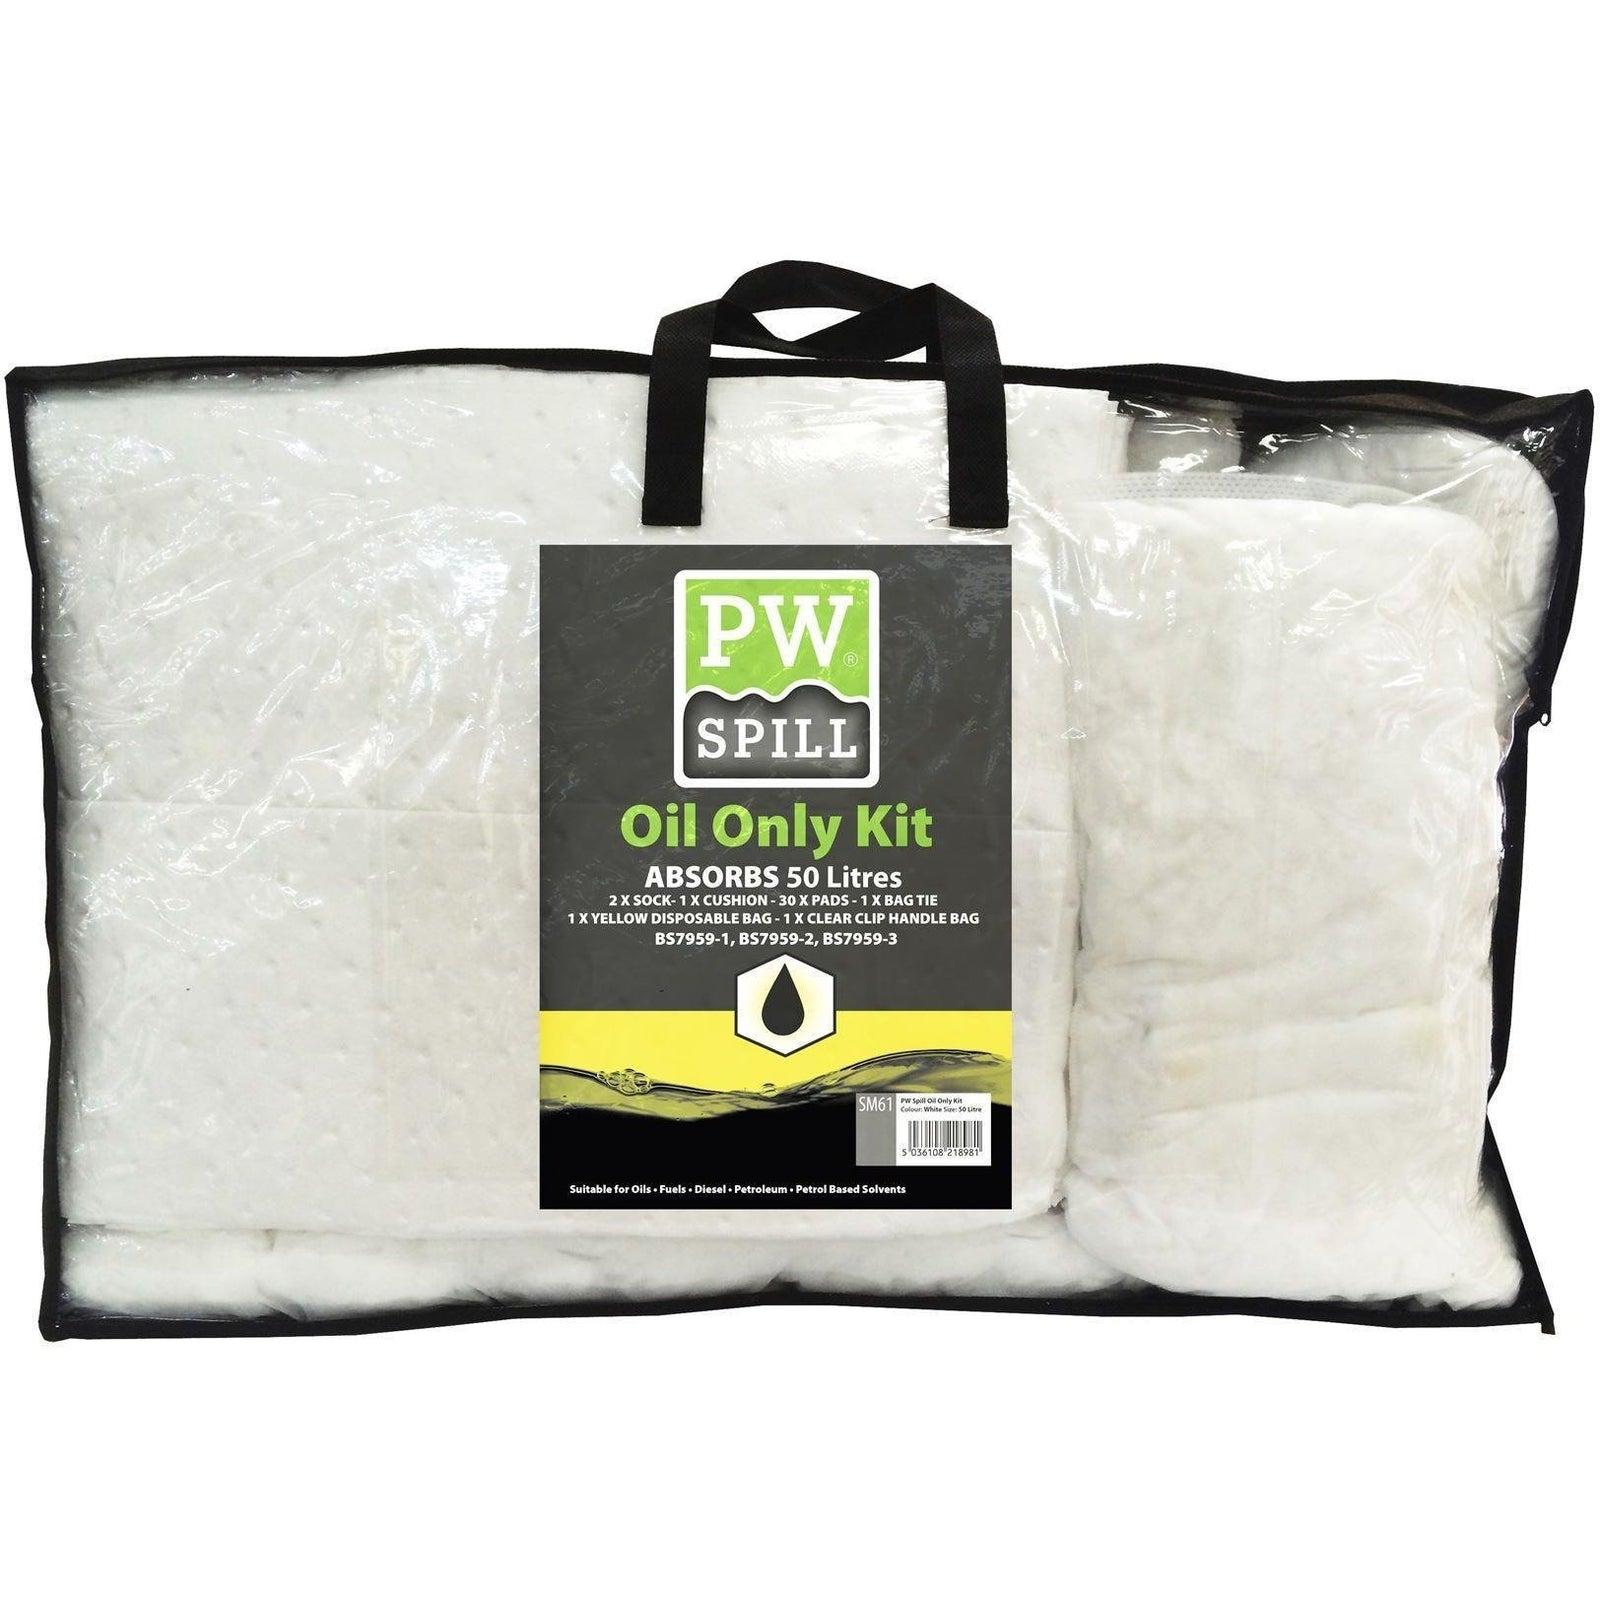 Portwest PW Spill 50 Litre Oil Only Kit  SM61 - reid outdoors